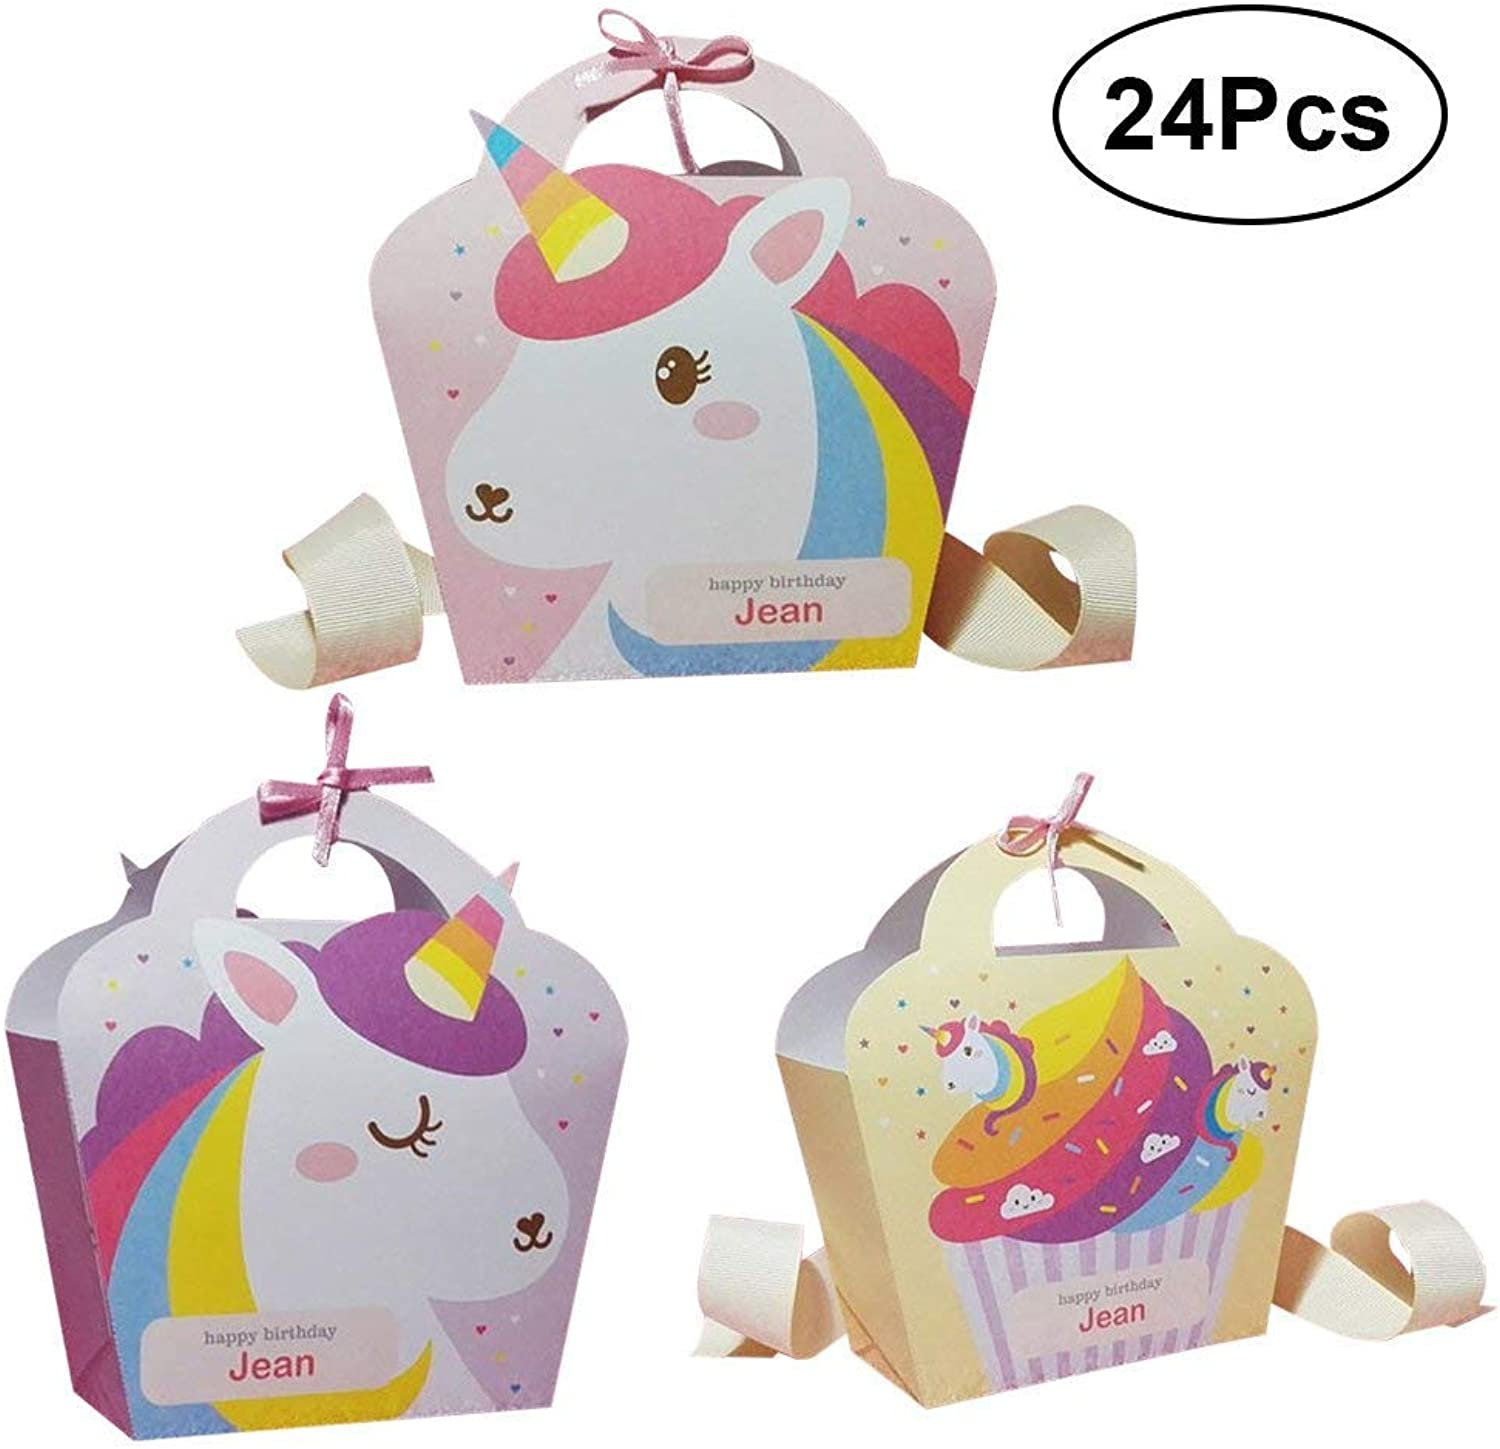 Polymer 24PCS Unicorn Gift Bags Cartoon Sugar Cookies Package Bags Party Favor Bags for Wedding Birthday Party